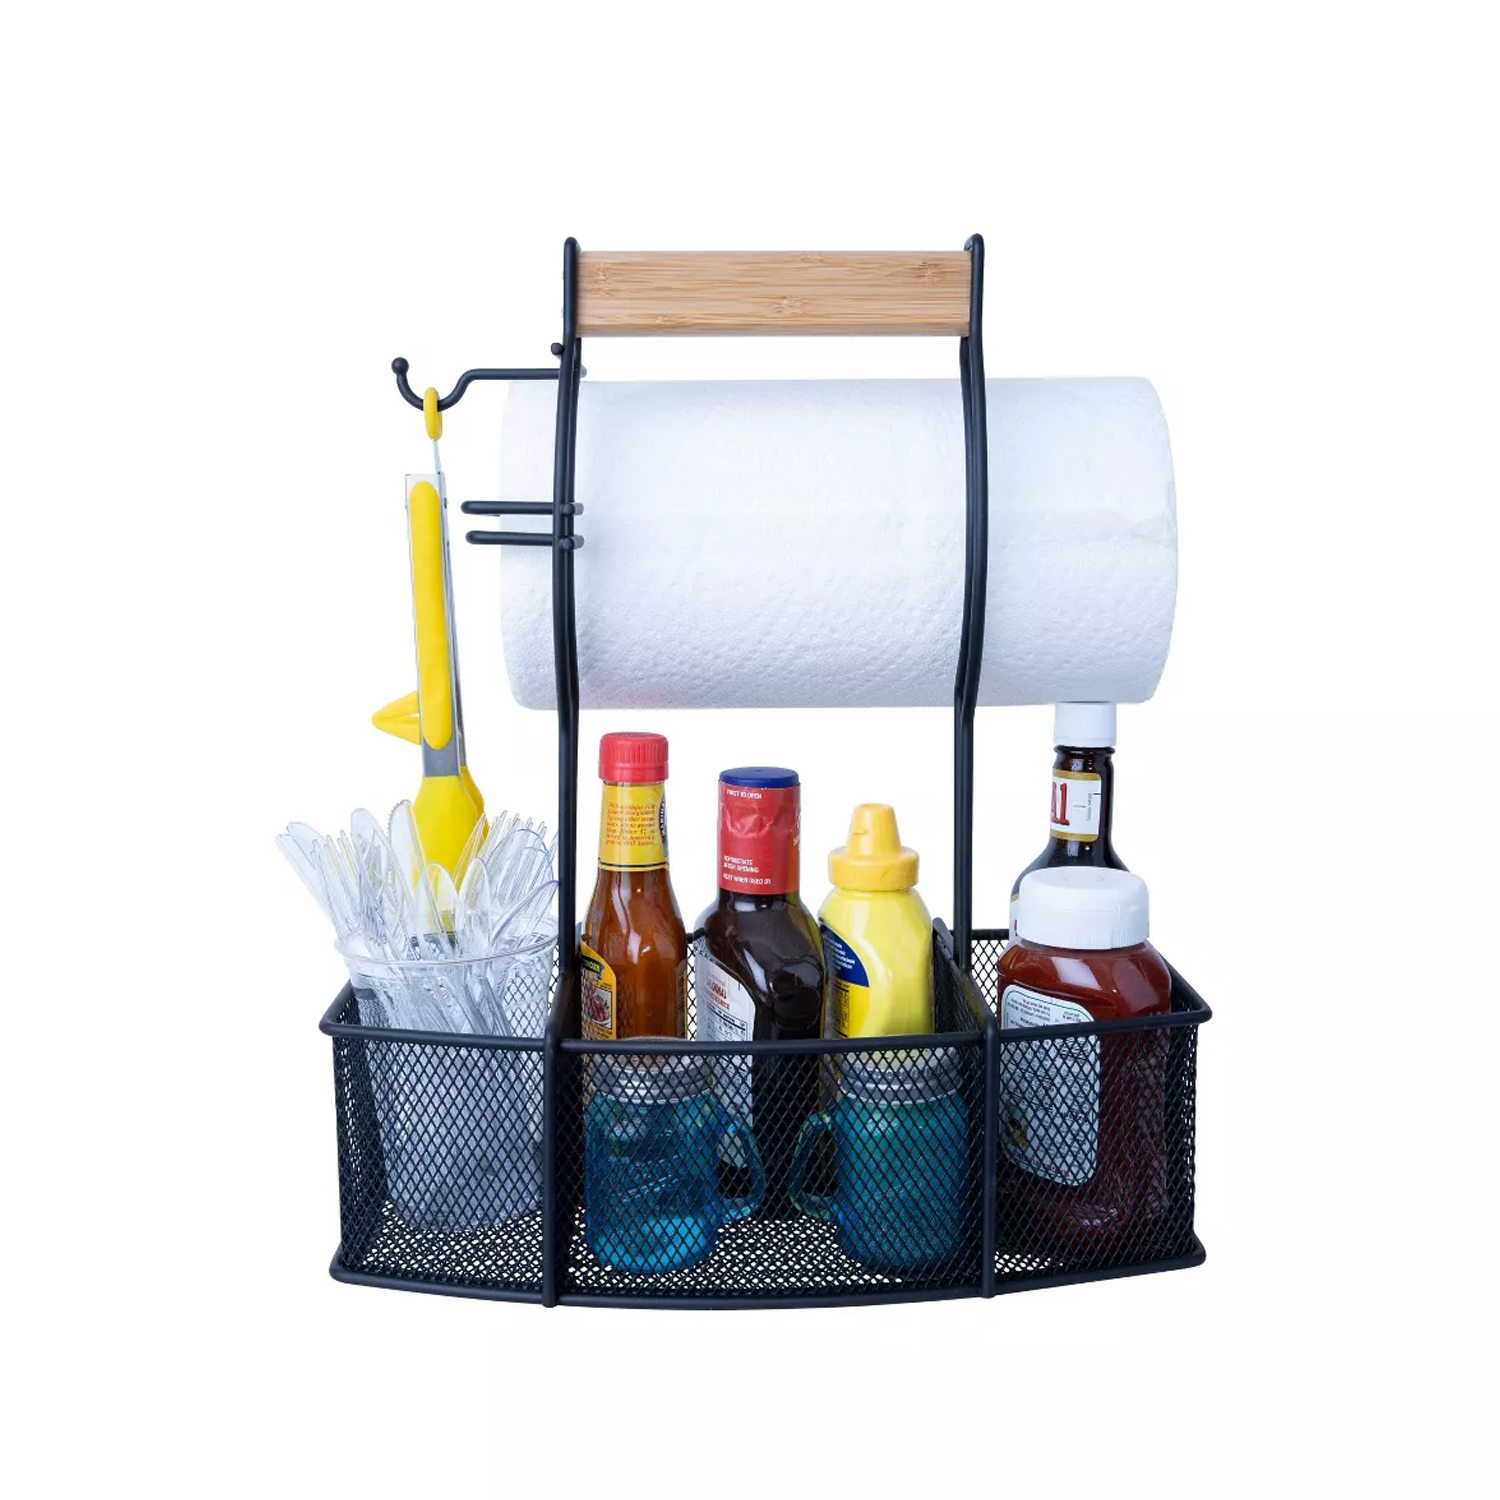 black caddy kit with paper towels, plastic forks spoons and knives, and condiments